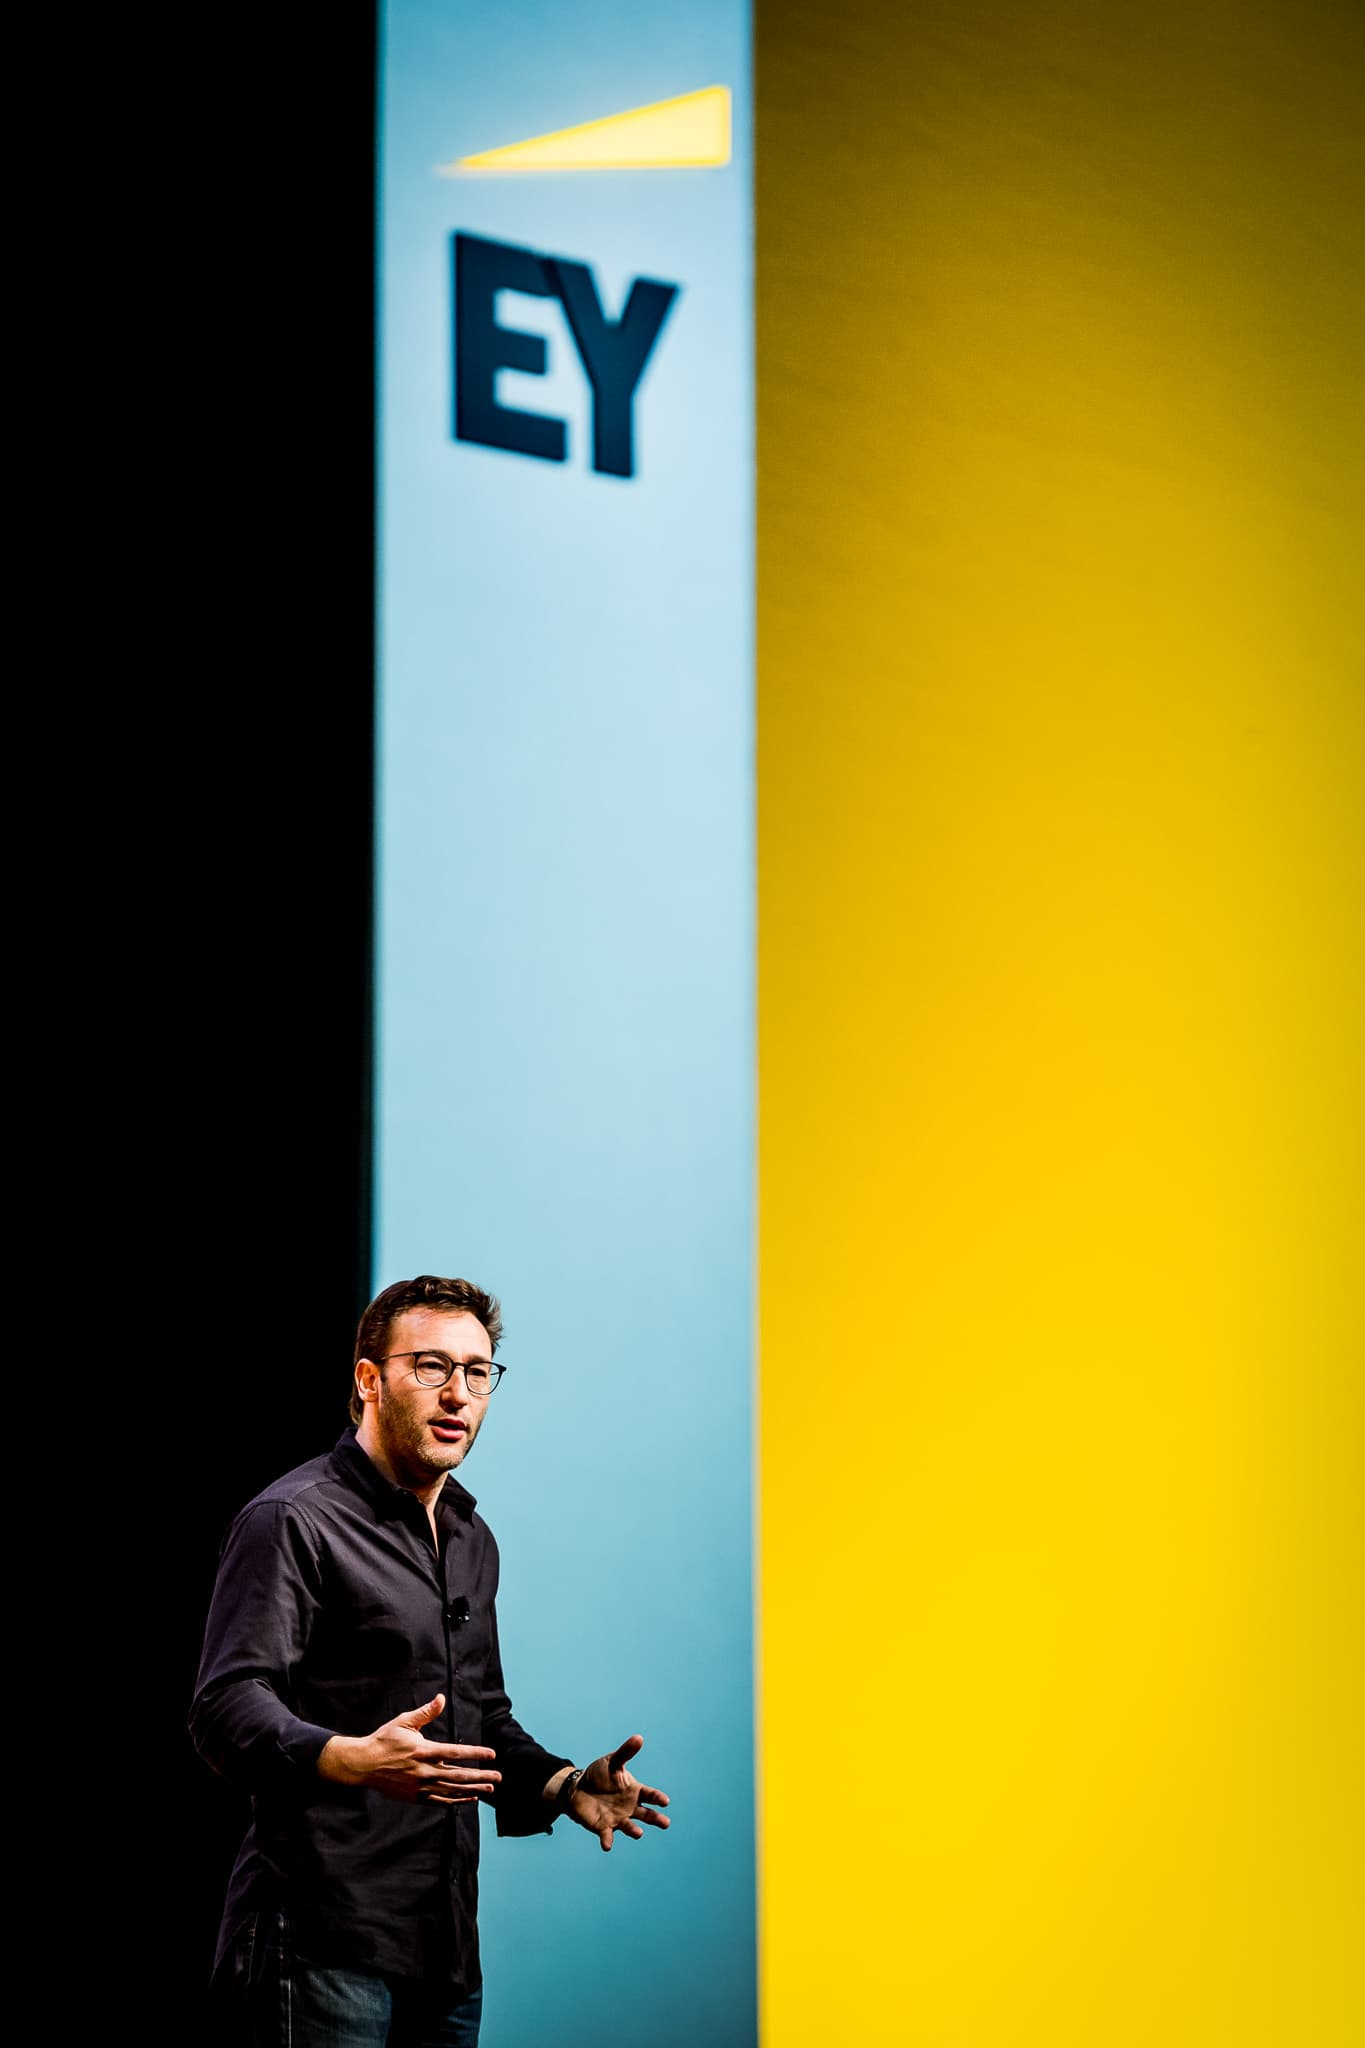 Vertical and colorful photo of Simon Sinek speaking at the EY Milestones Corporate Event